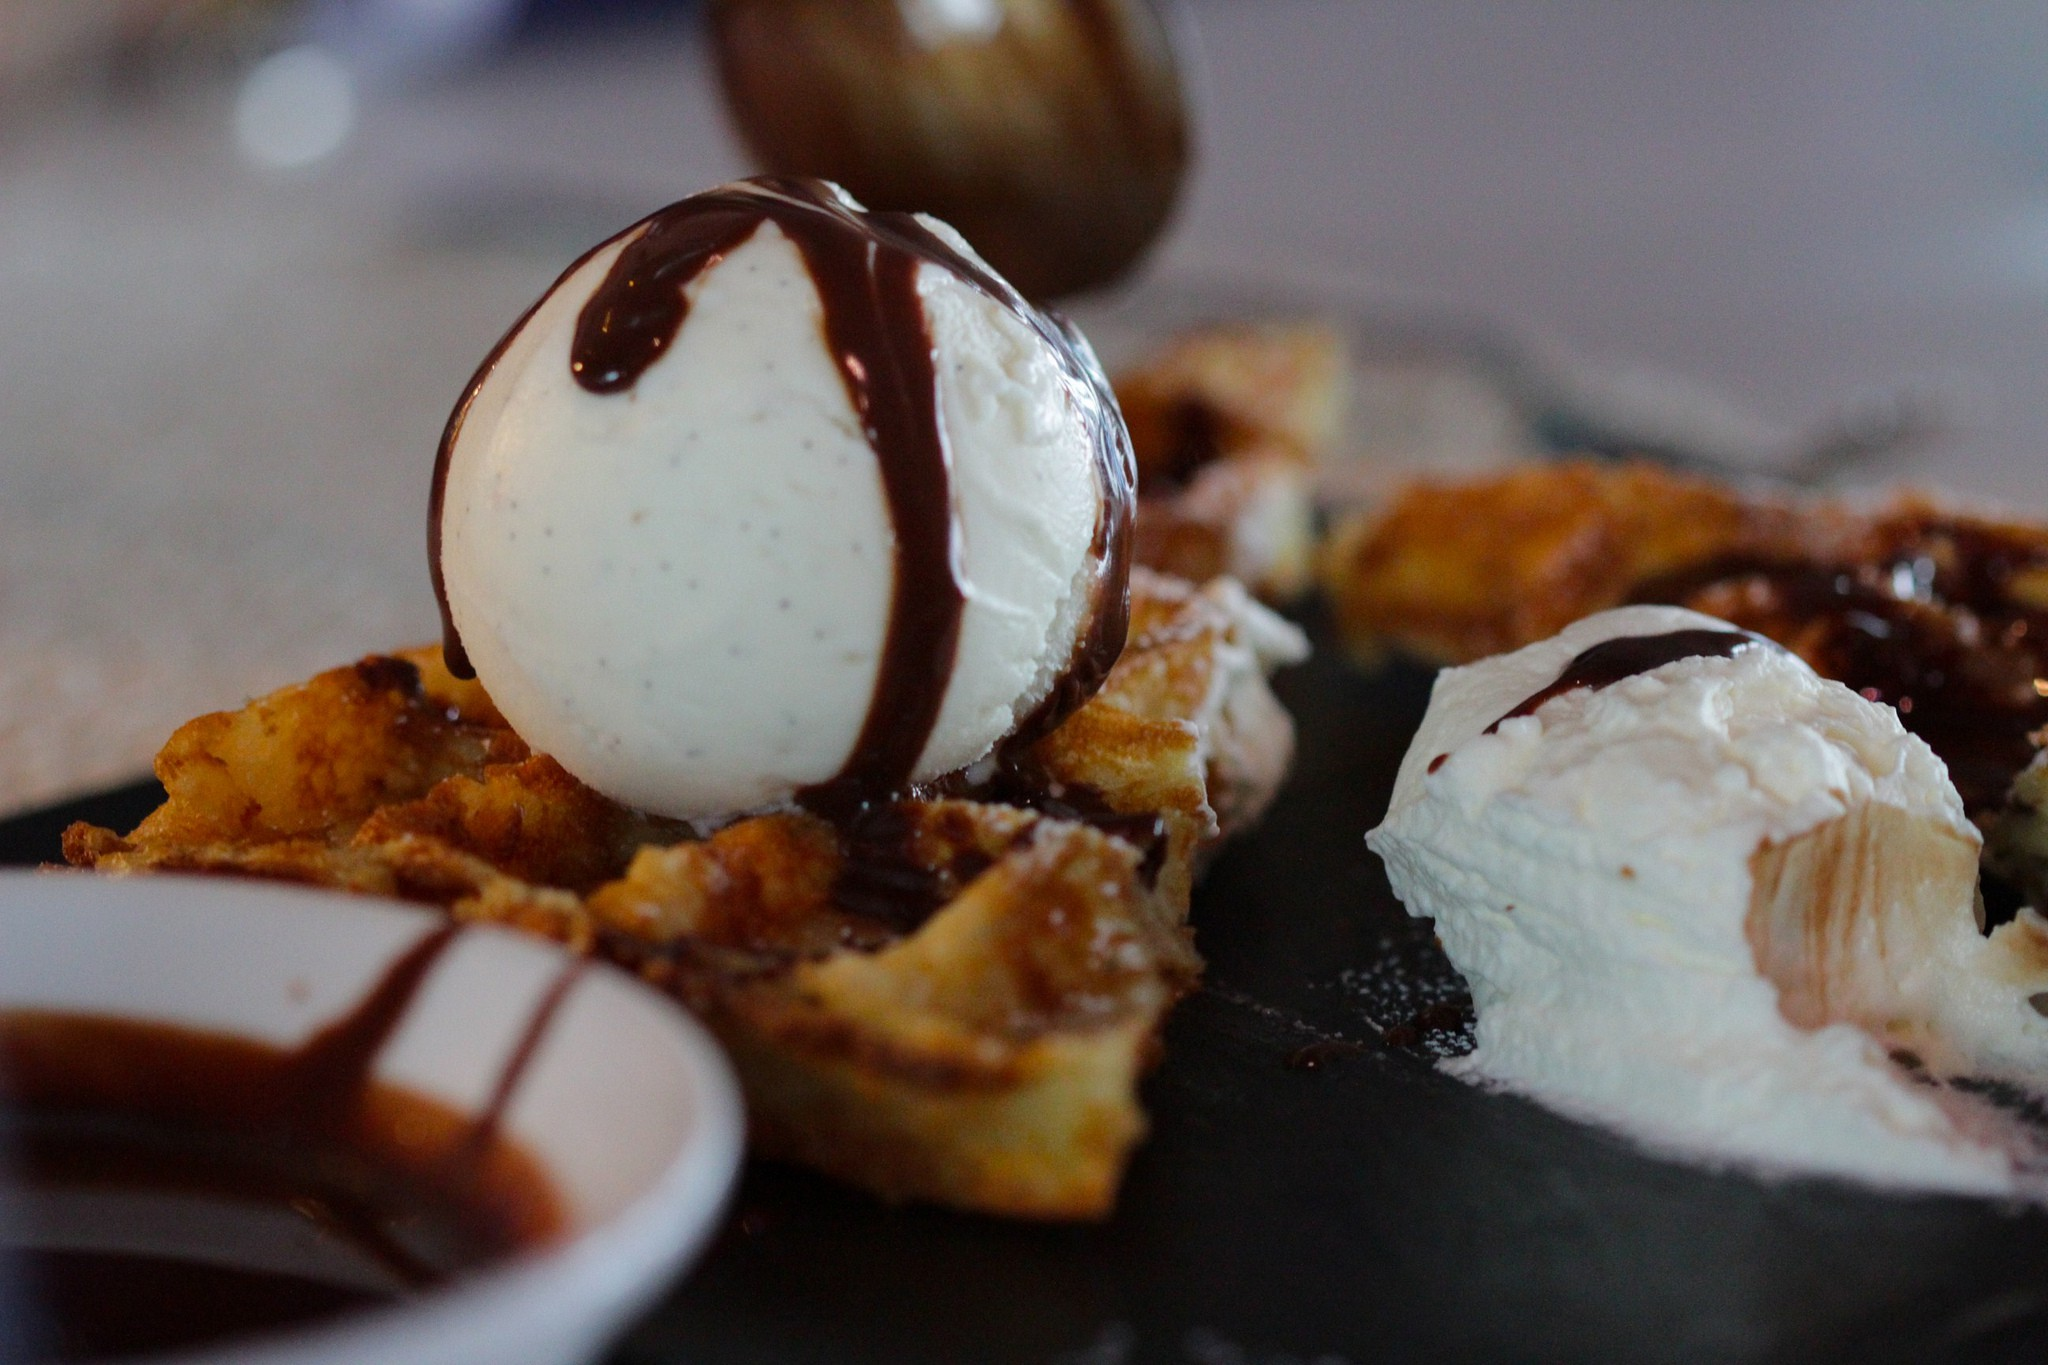 Belgian Waffles and Icecream |© Luigi Mengato/Flickr